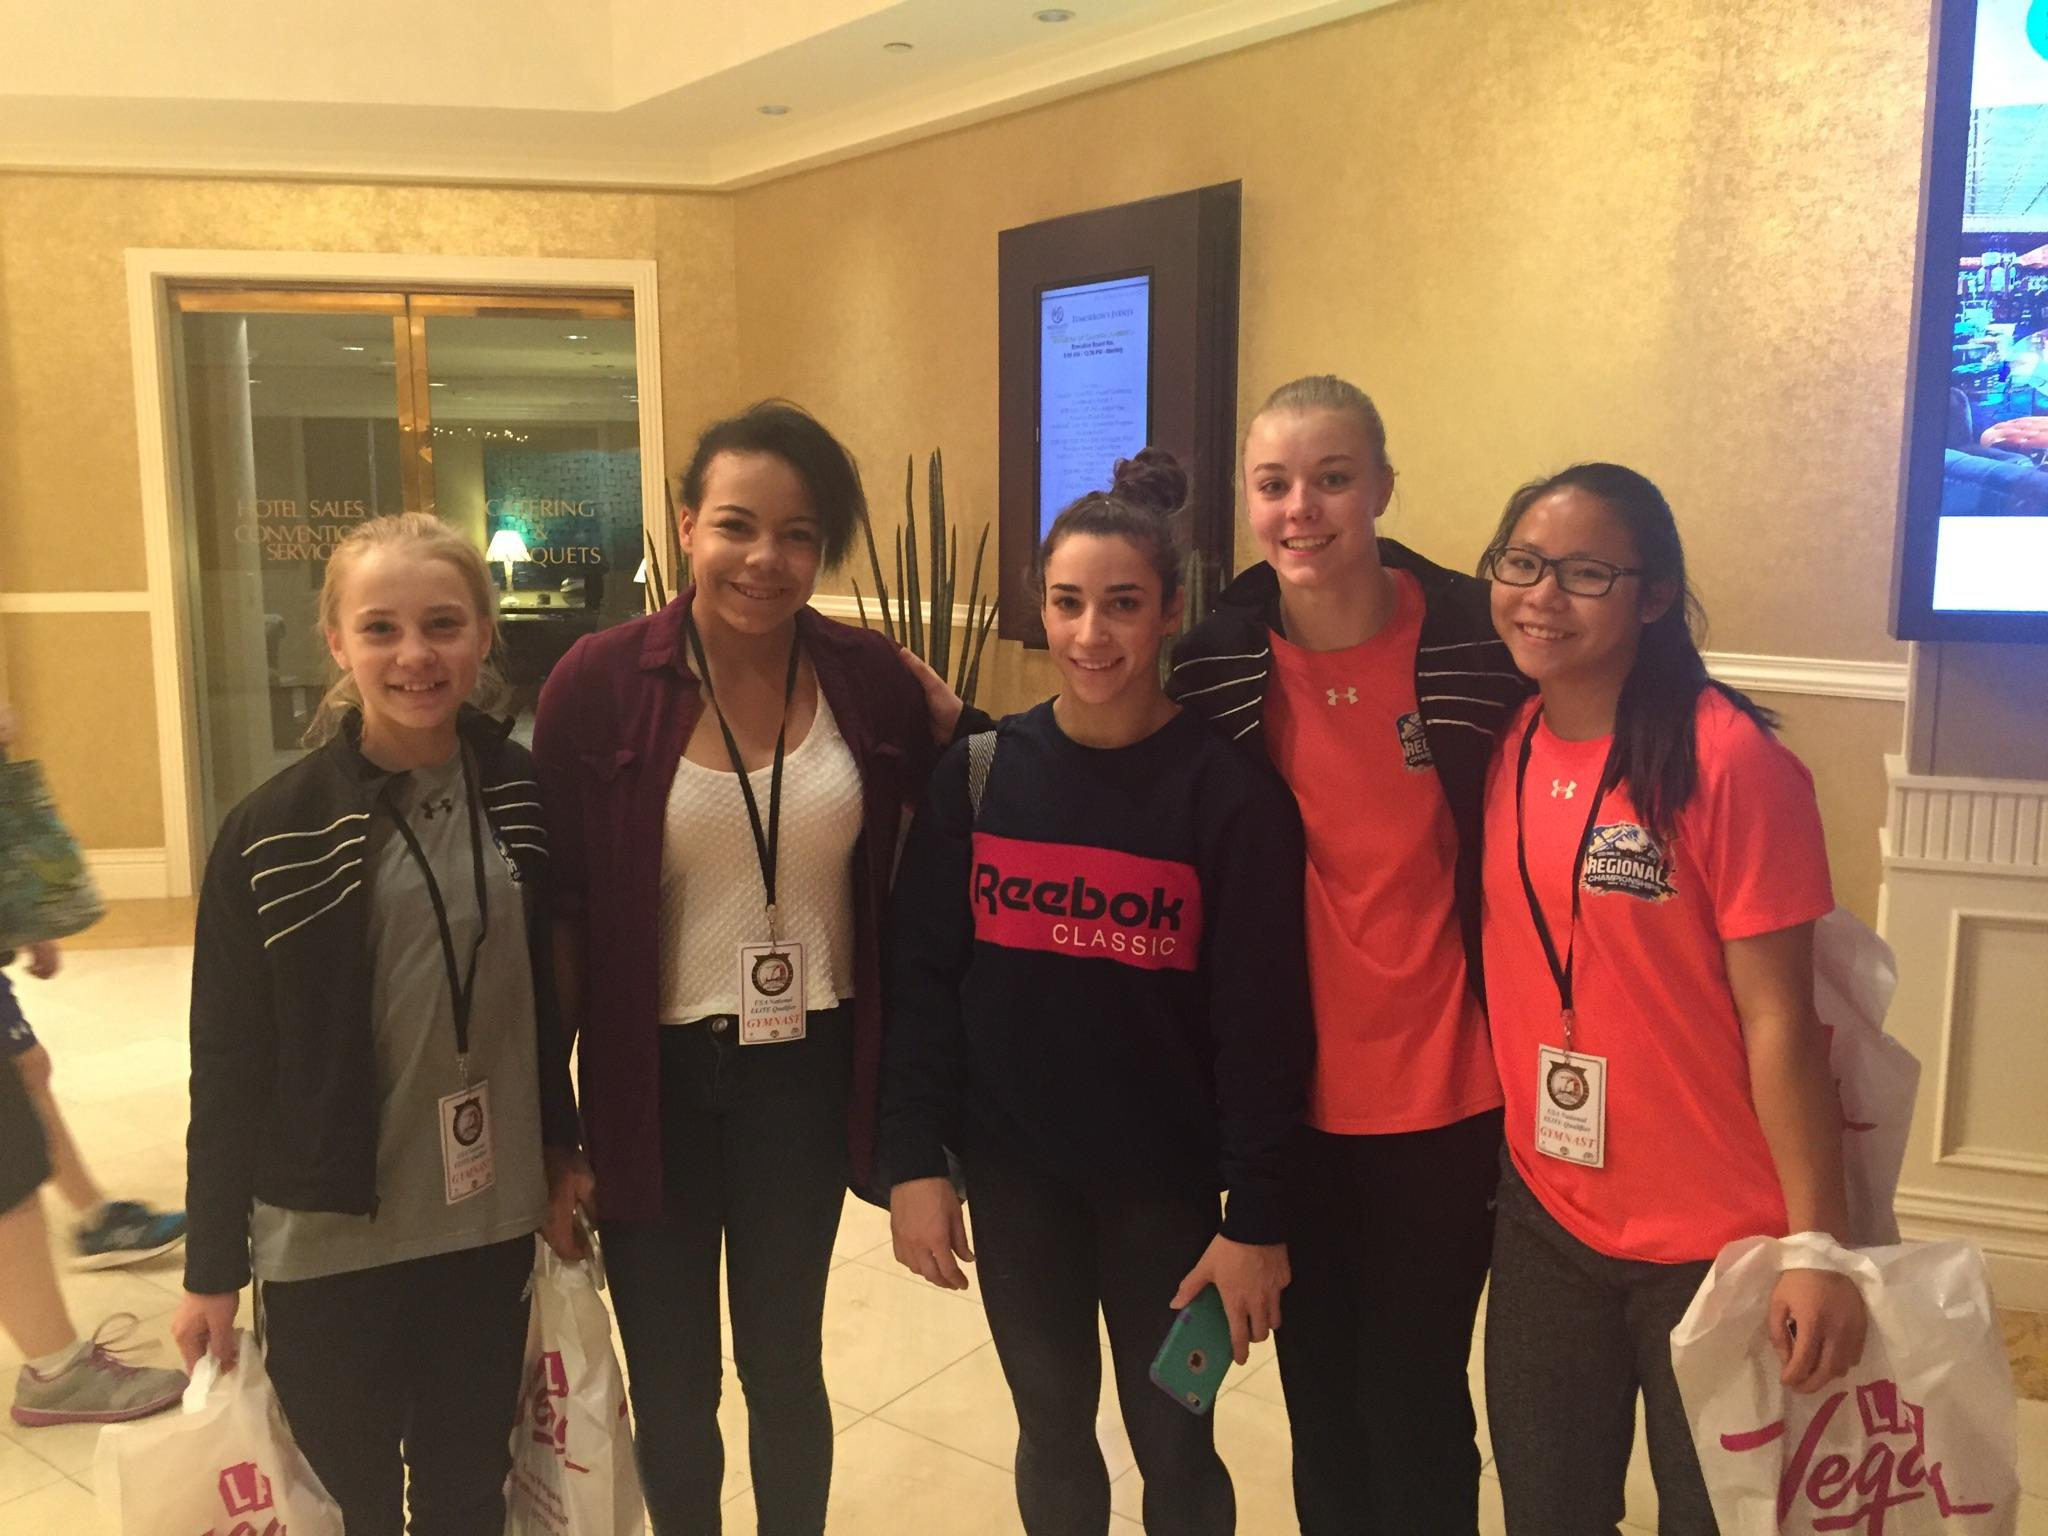 AGS with Aly Raisman